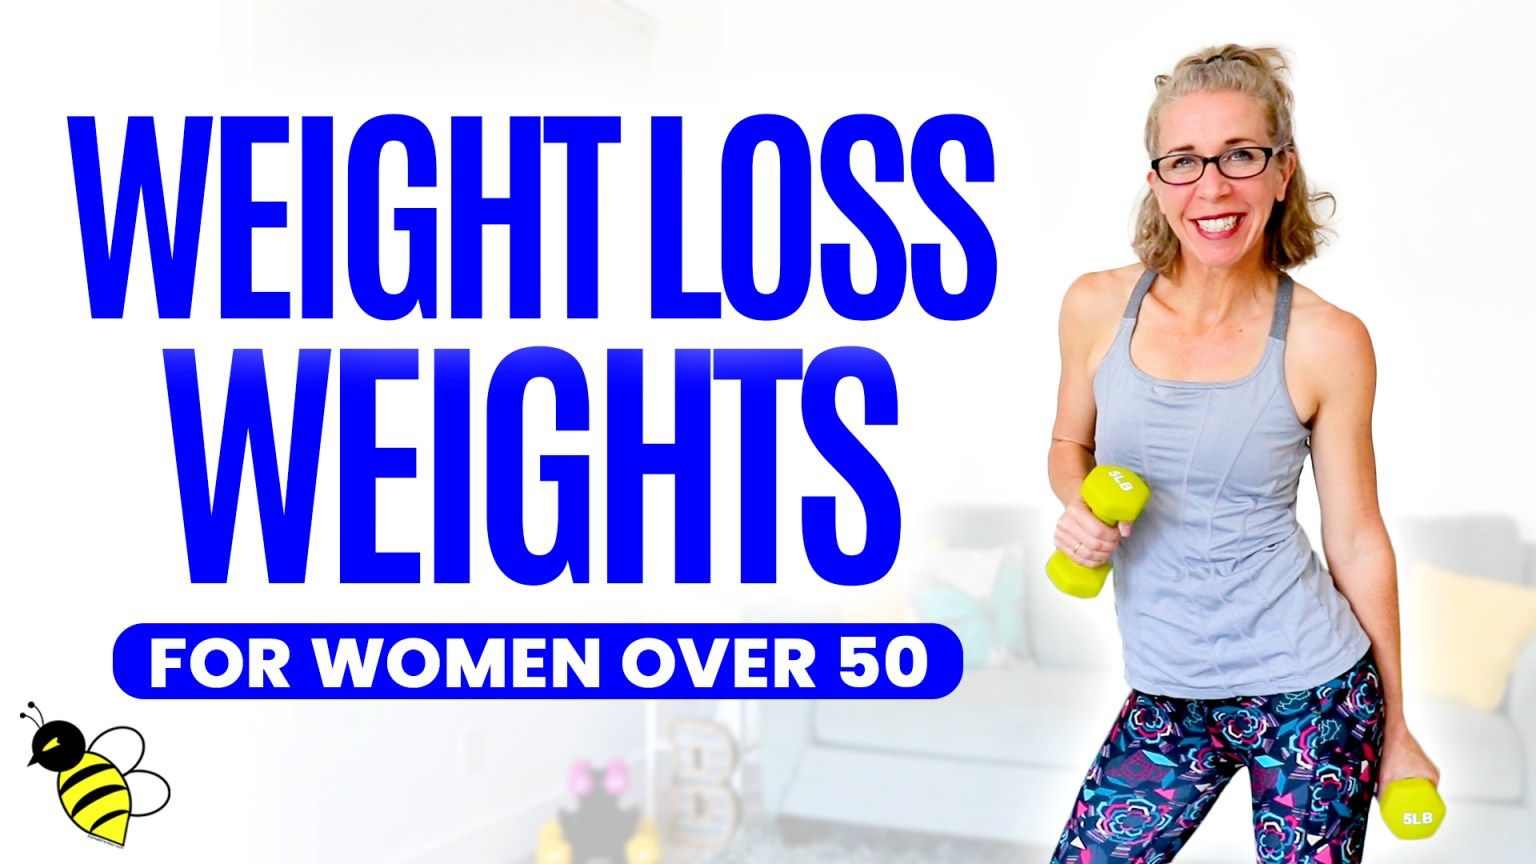 20 Minute WEIGHT LOSS Weights Workout for Women over 50 ⚡️ Pahla B Fitness • Pahla B Fitness